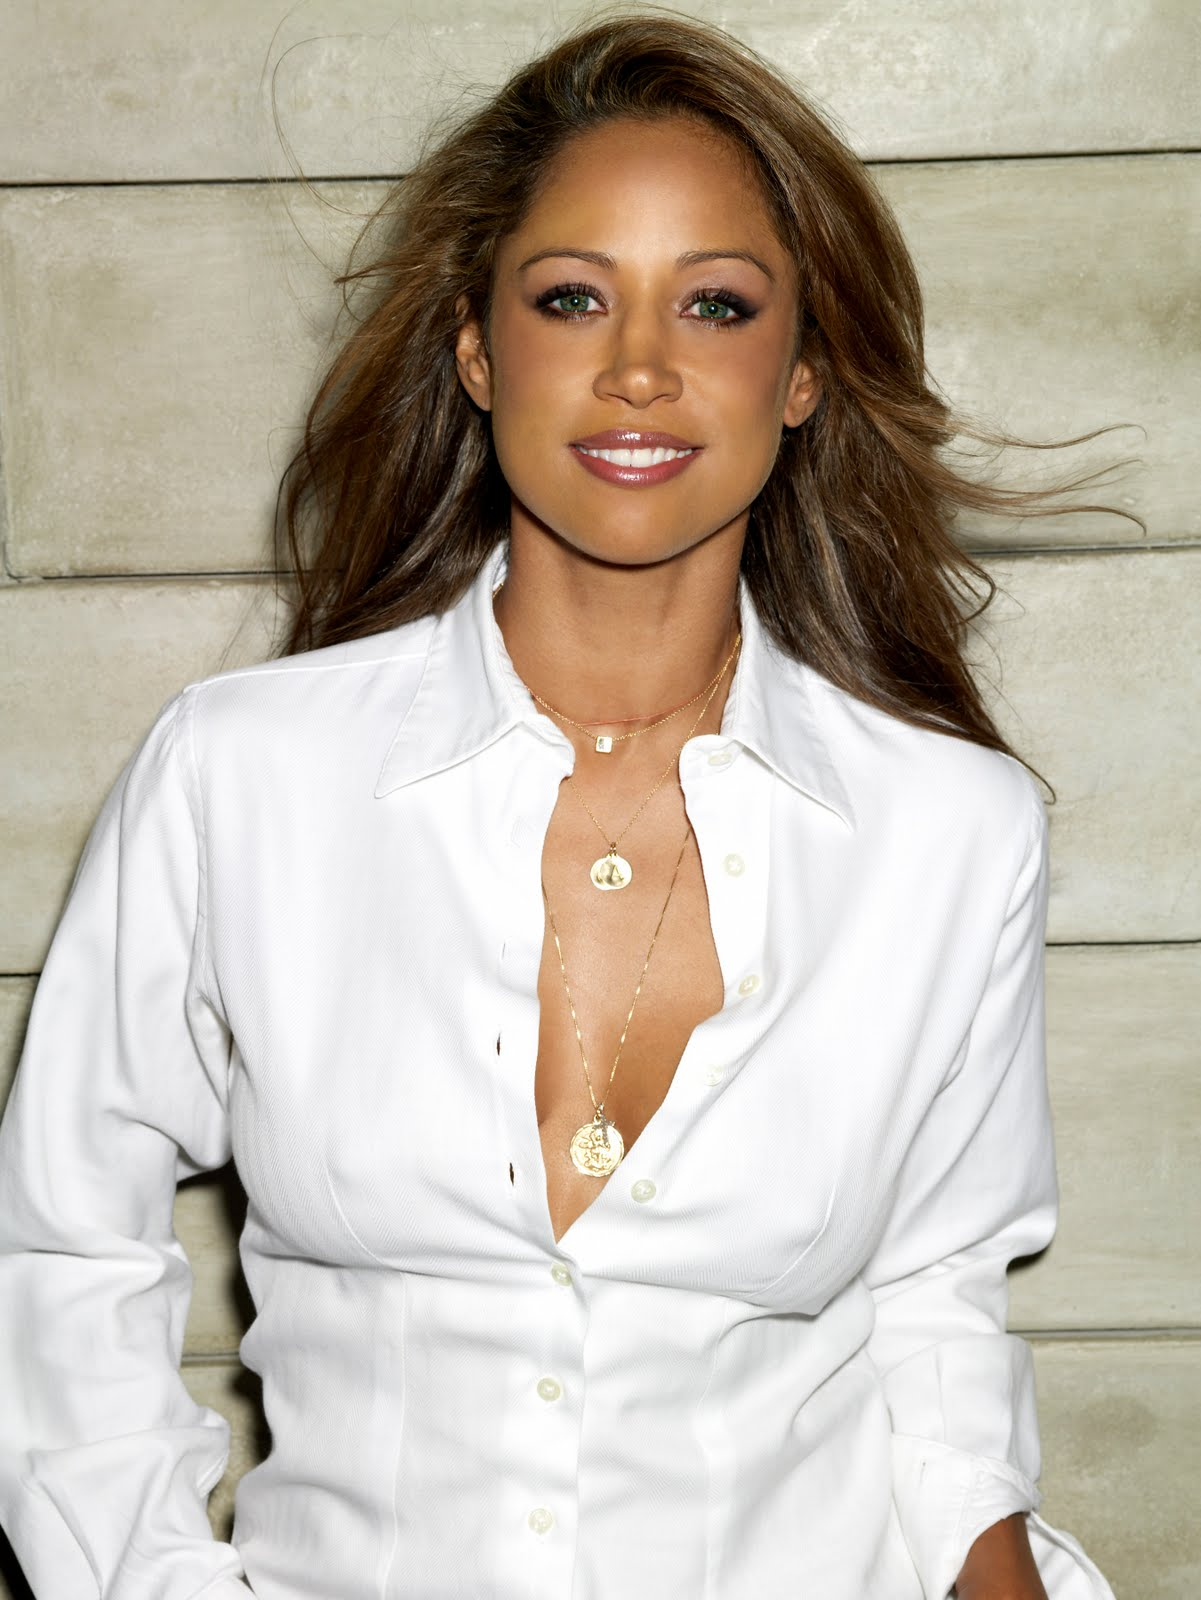 Stacey Dash - Wallpaper Actress